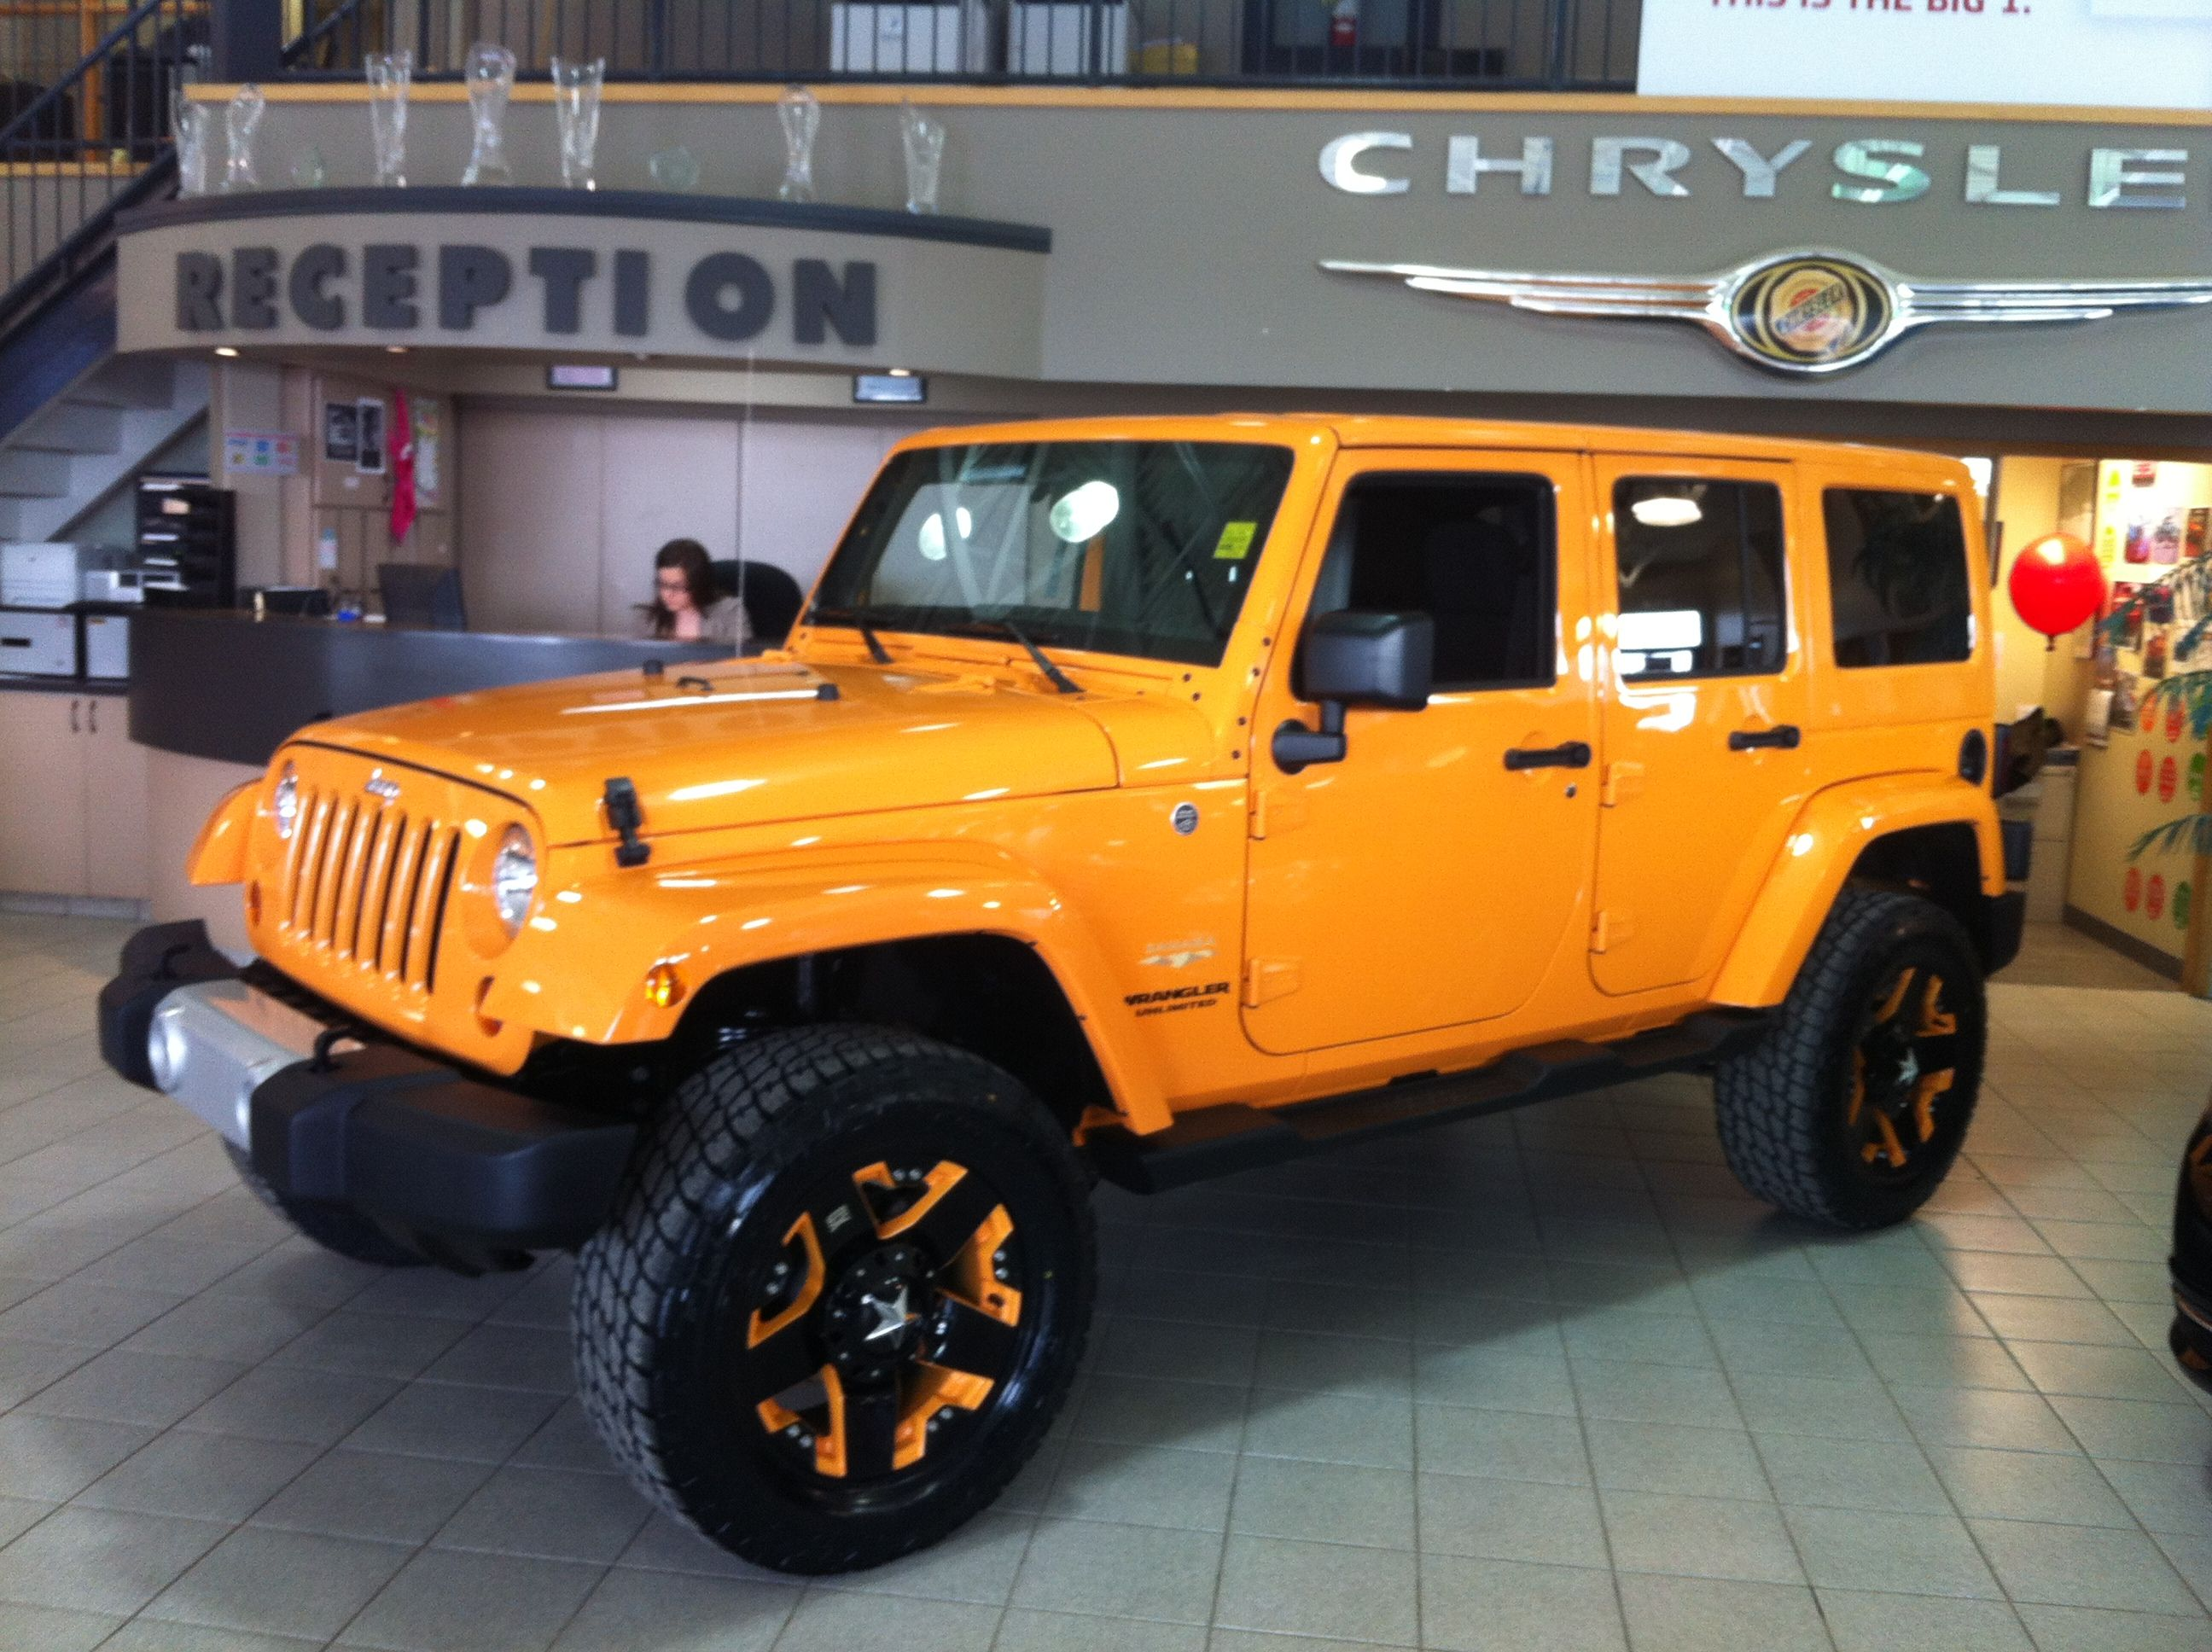 This citrus flavoured Jeep is a beauty Check out those WOW wheels